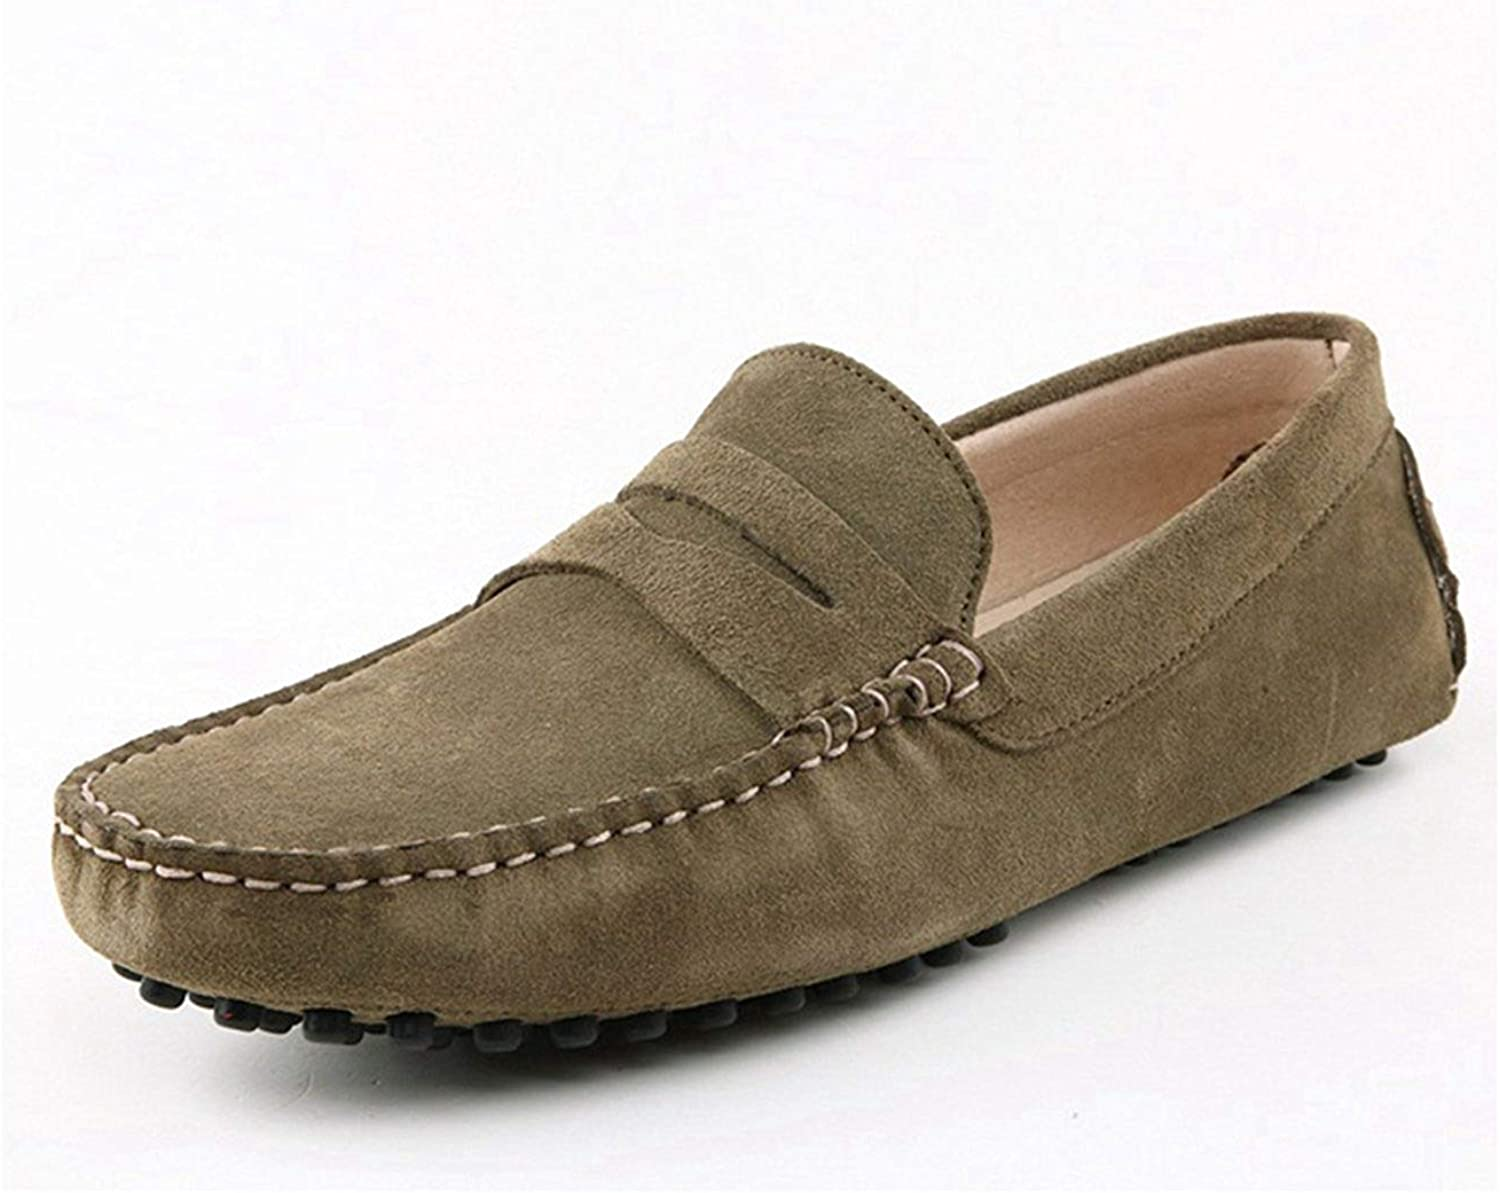 ZHRUI Men's Stripe Casual Comfortable Hot Khaki Suede Moccasin Loafers Boat shoes UK 7.5 (color   -, Size   -)